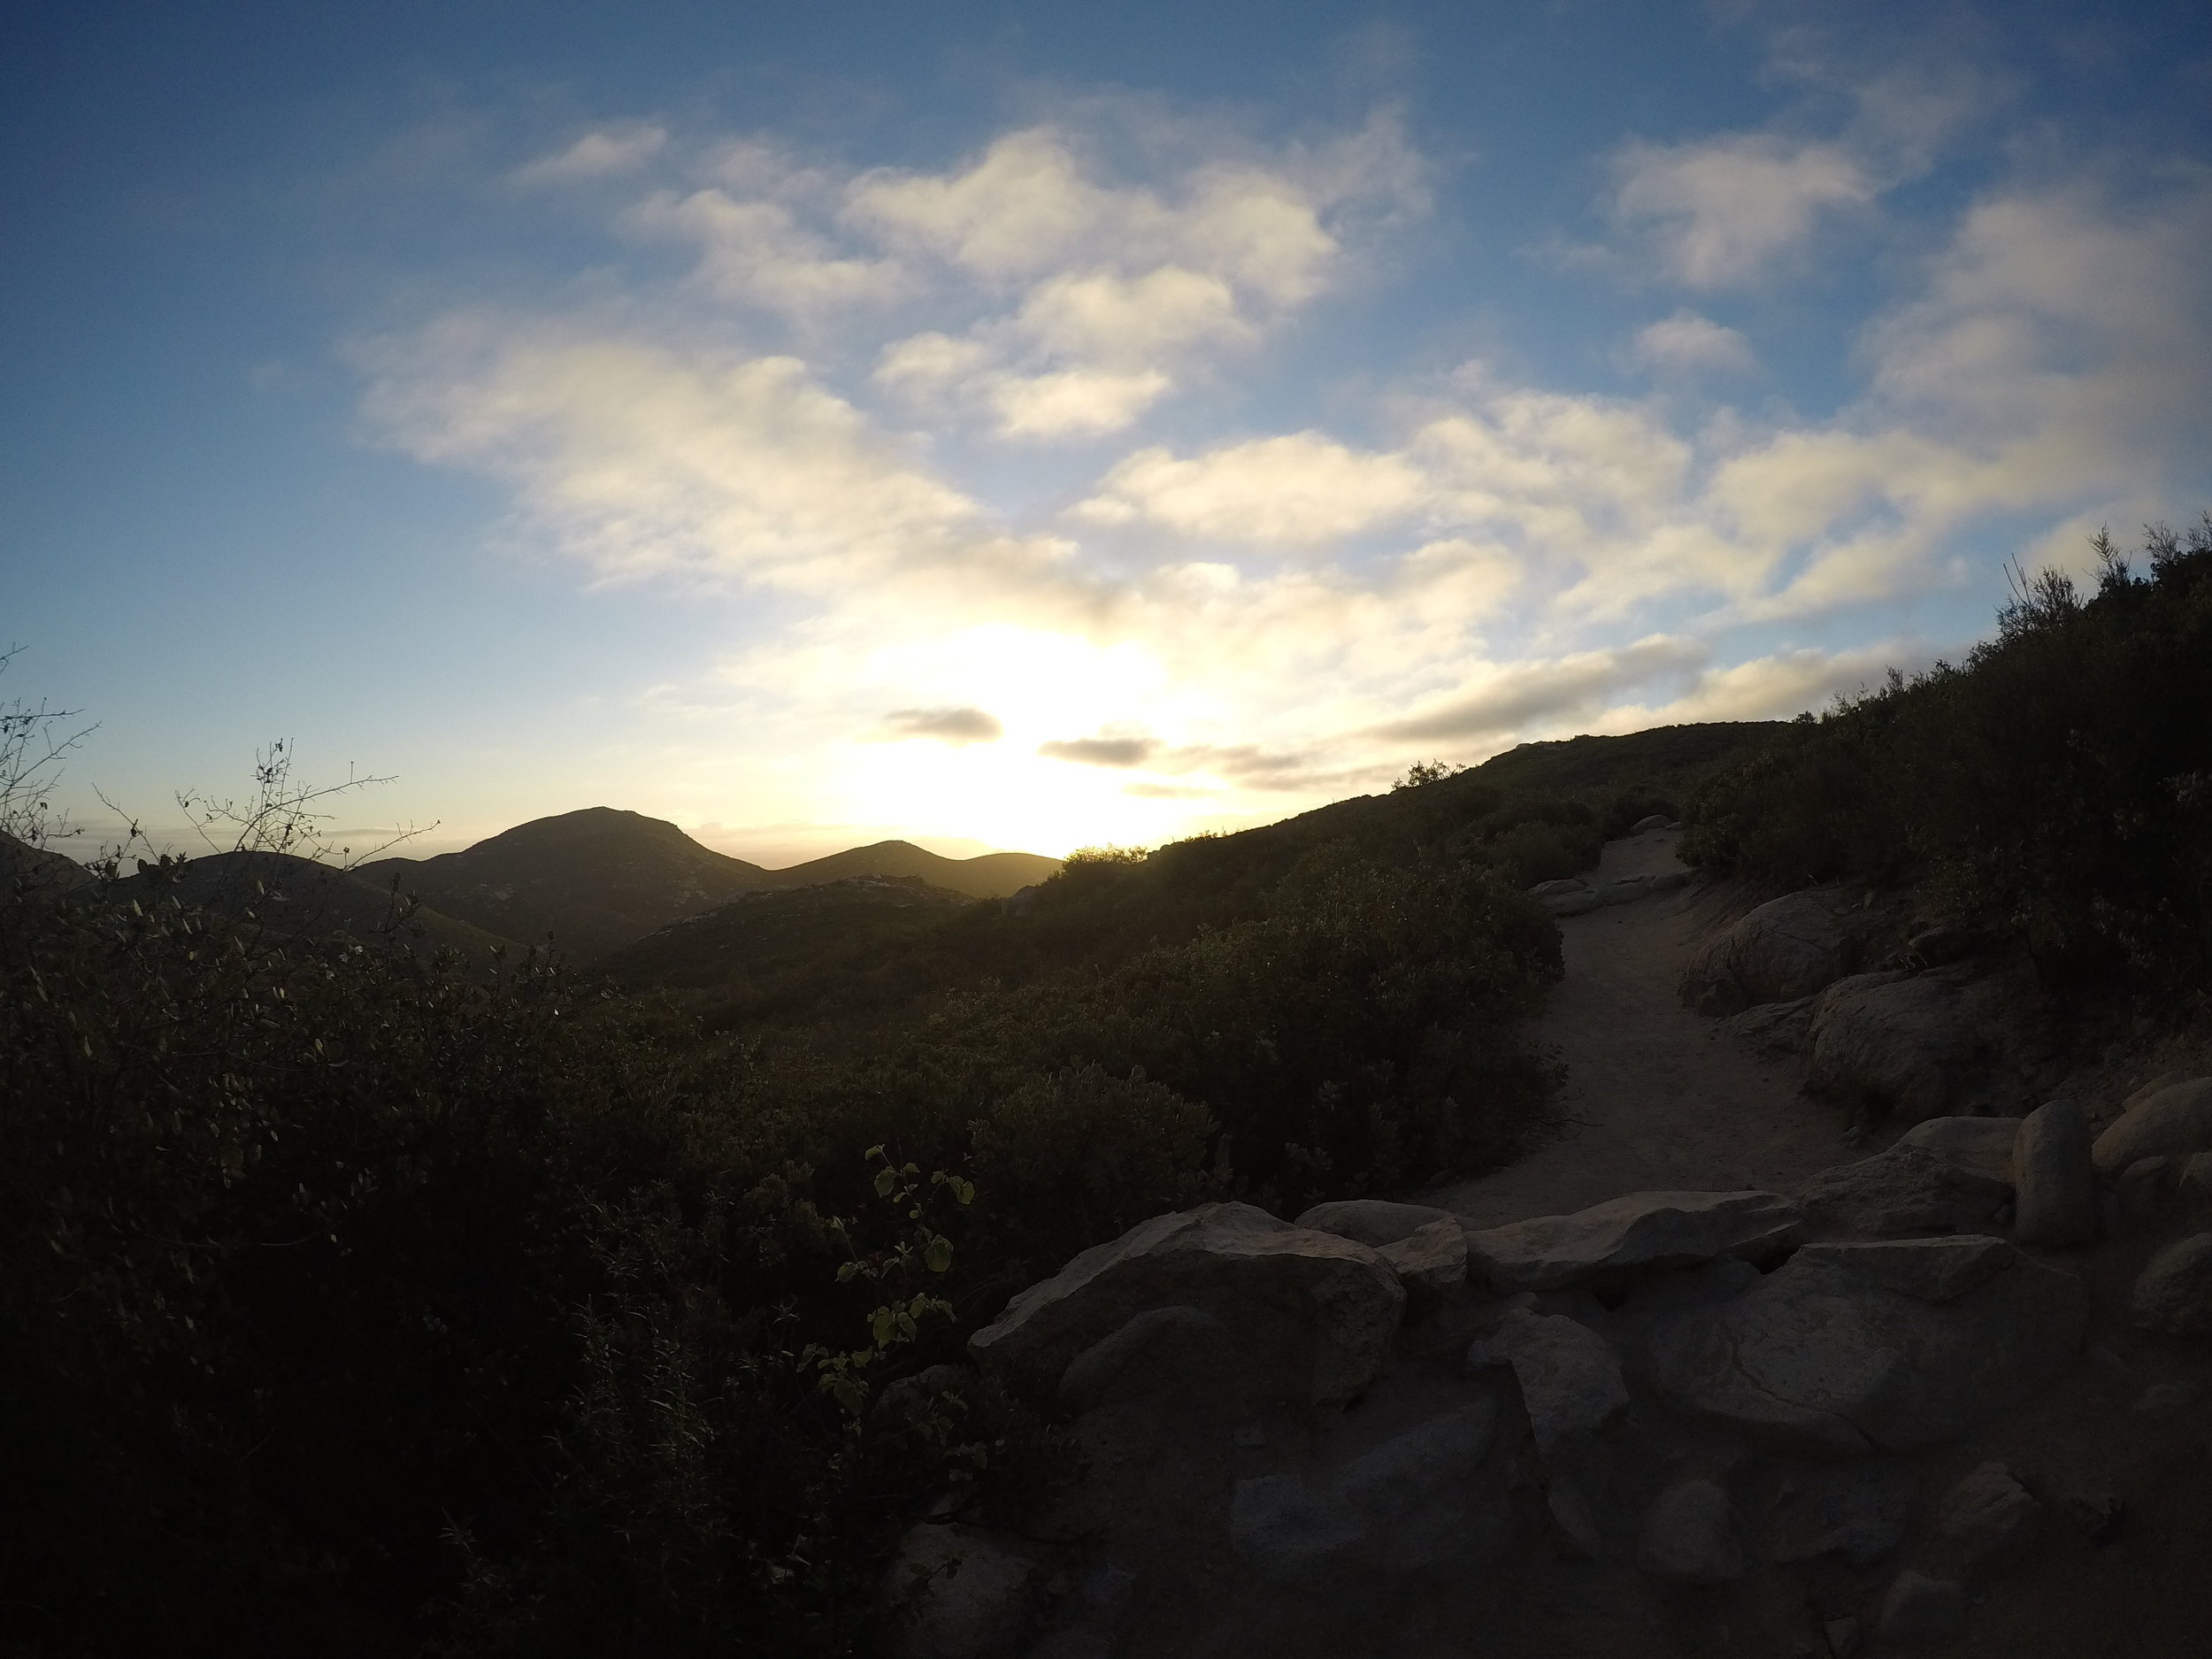 Depending on timing and season, the trail can also provide some great sunrise views on the eastern side as well.